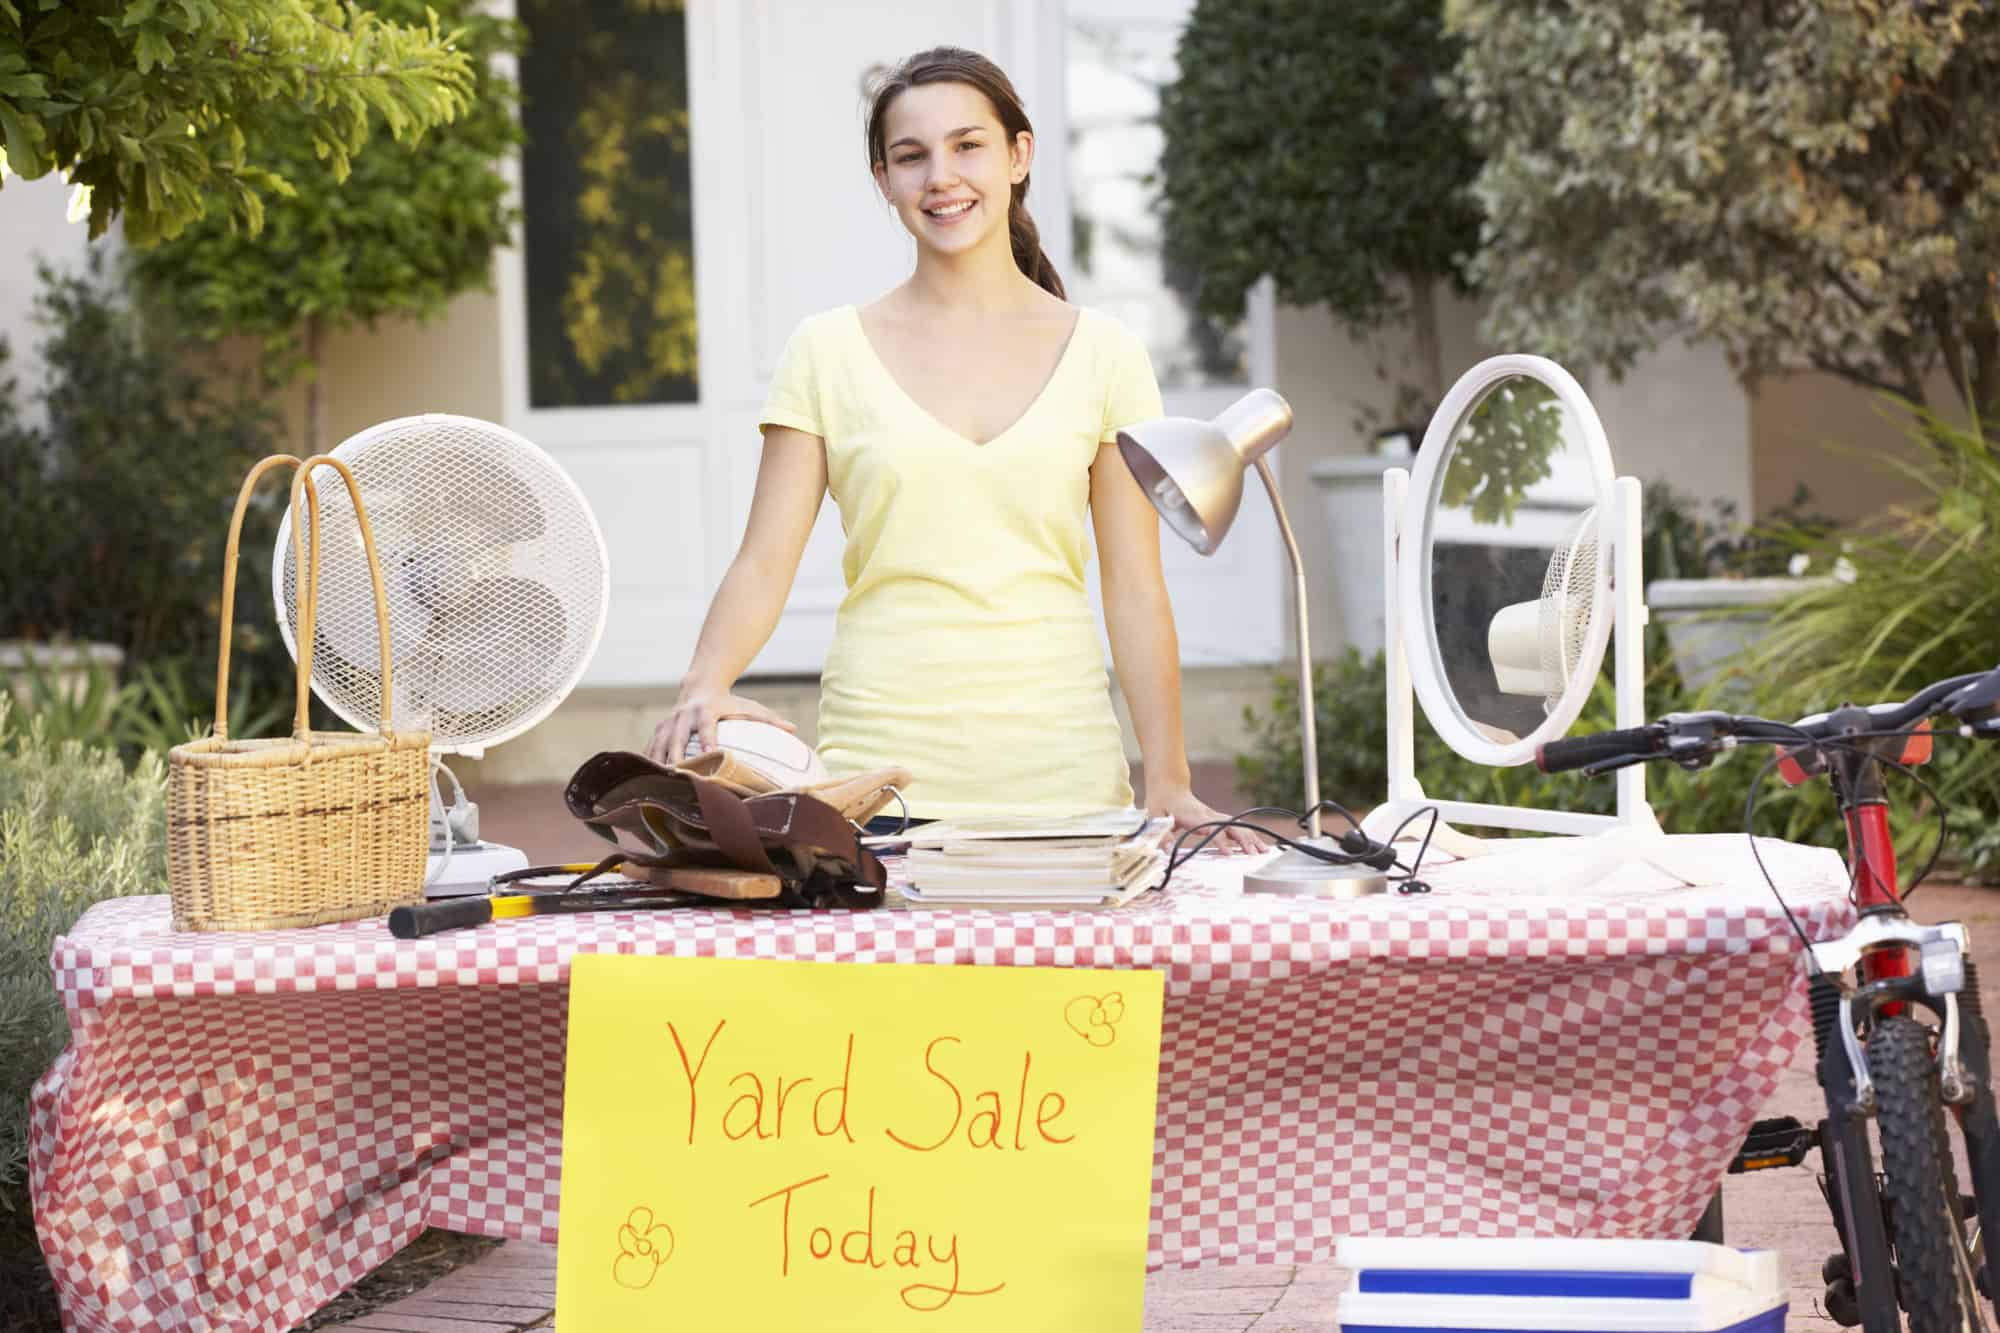 Teenage Girl Holding Yard Sale